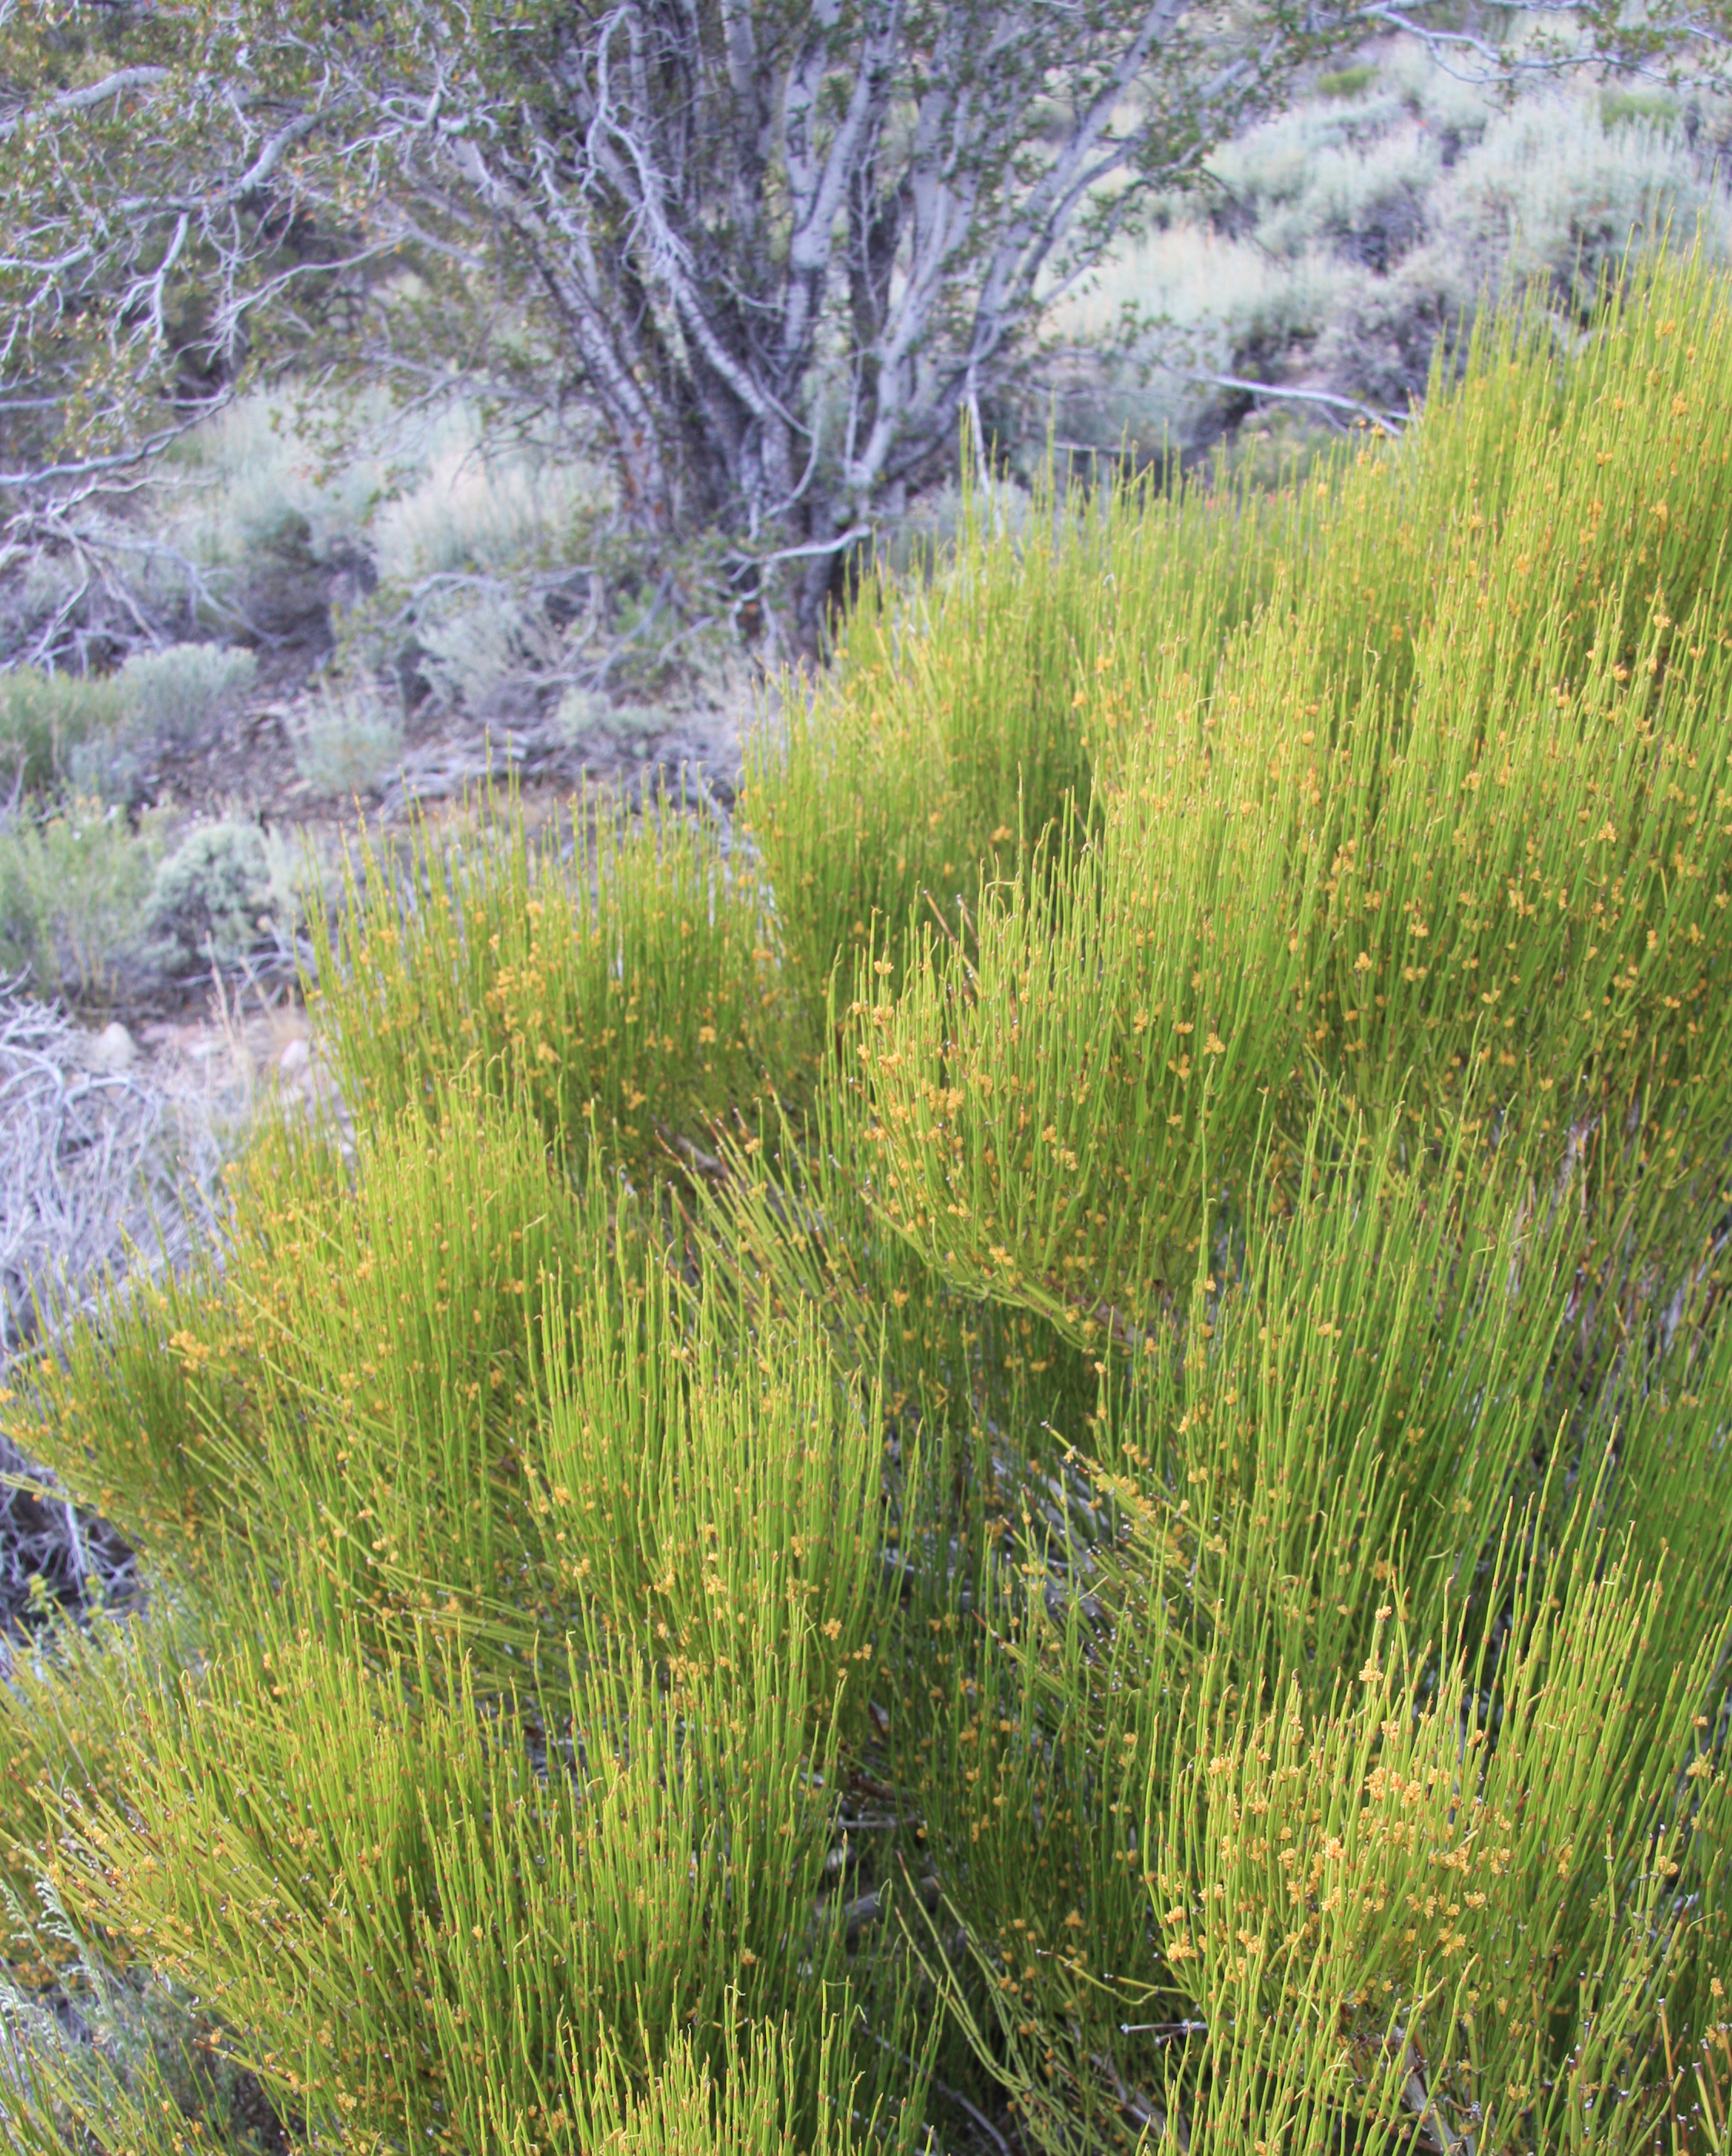 File:Green ephedra Ephedra viridis bush jpg - Wikimedia Commons